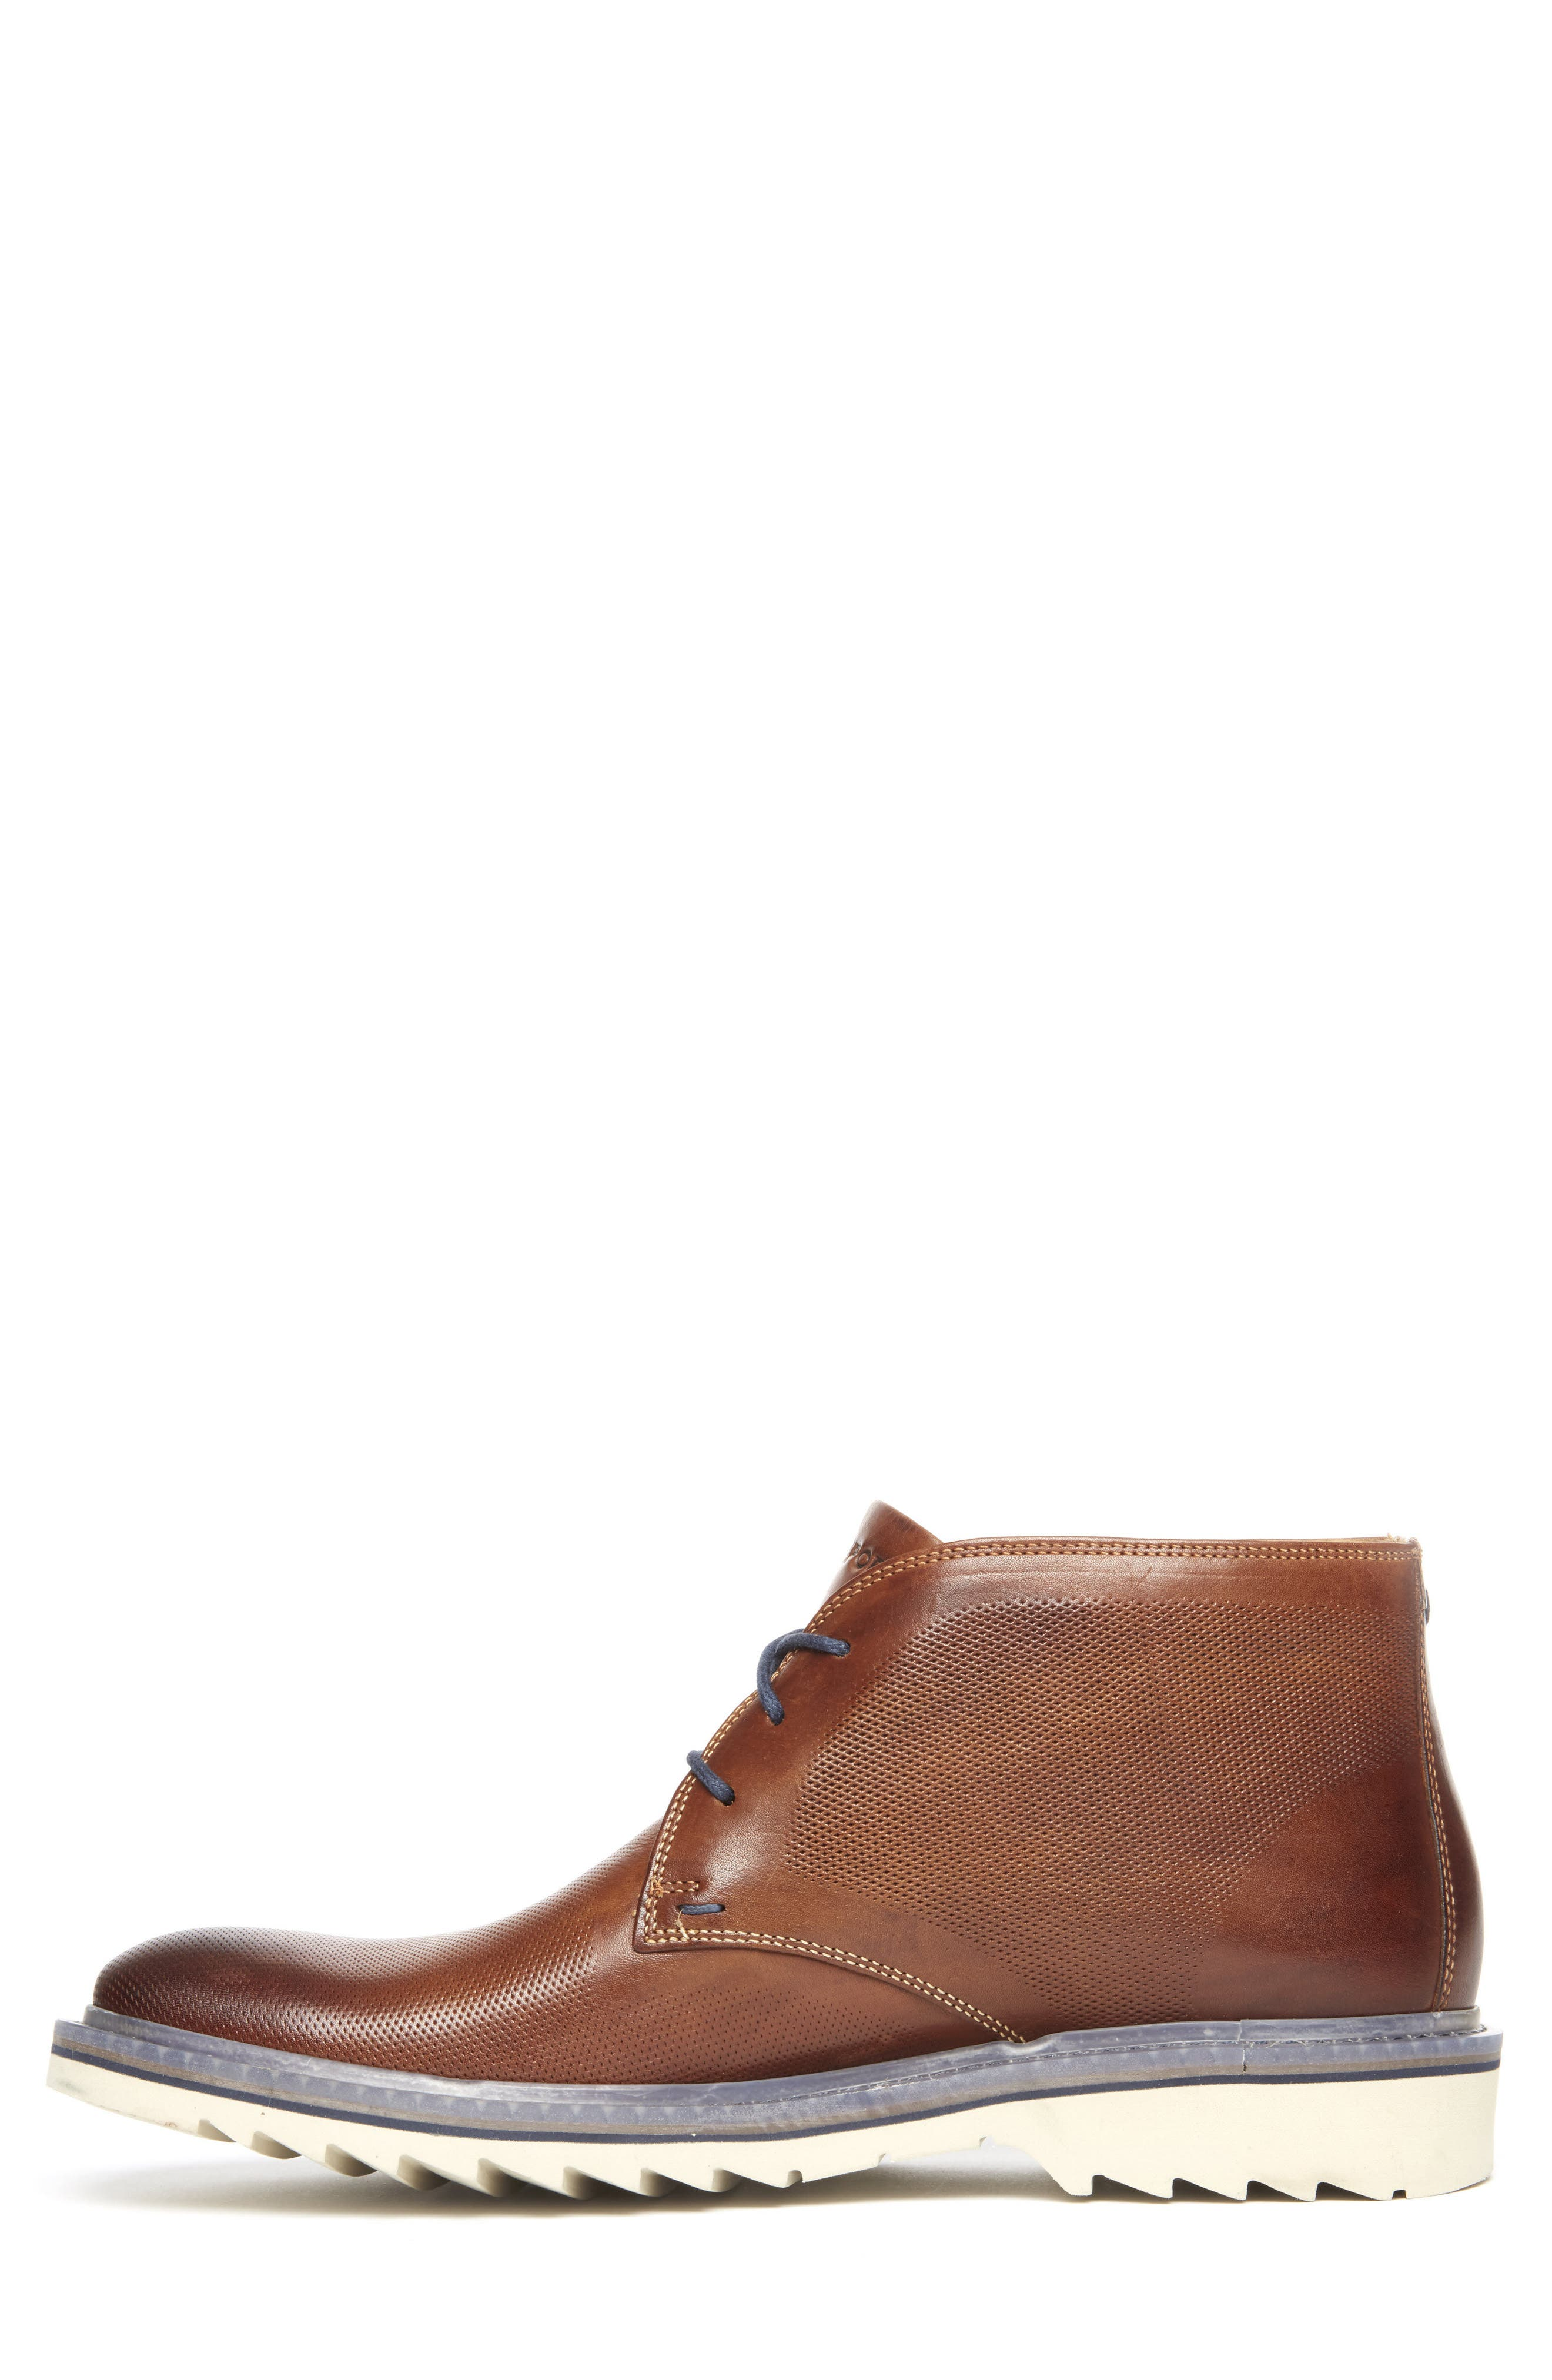 Jaxson Chukka Boot,                             Alternate thumbnail 3, color,                             200